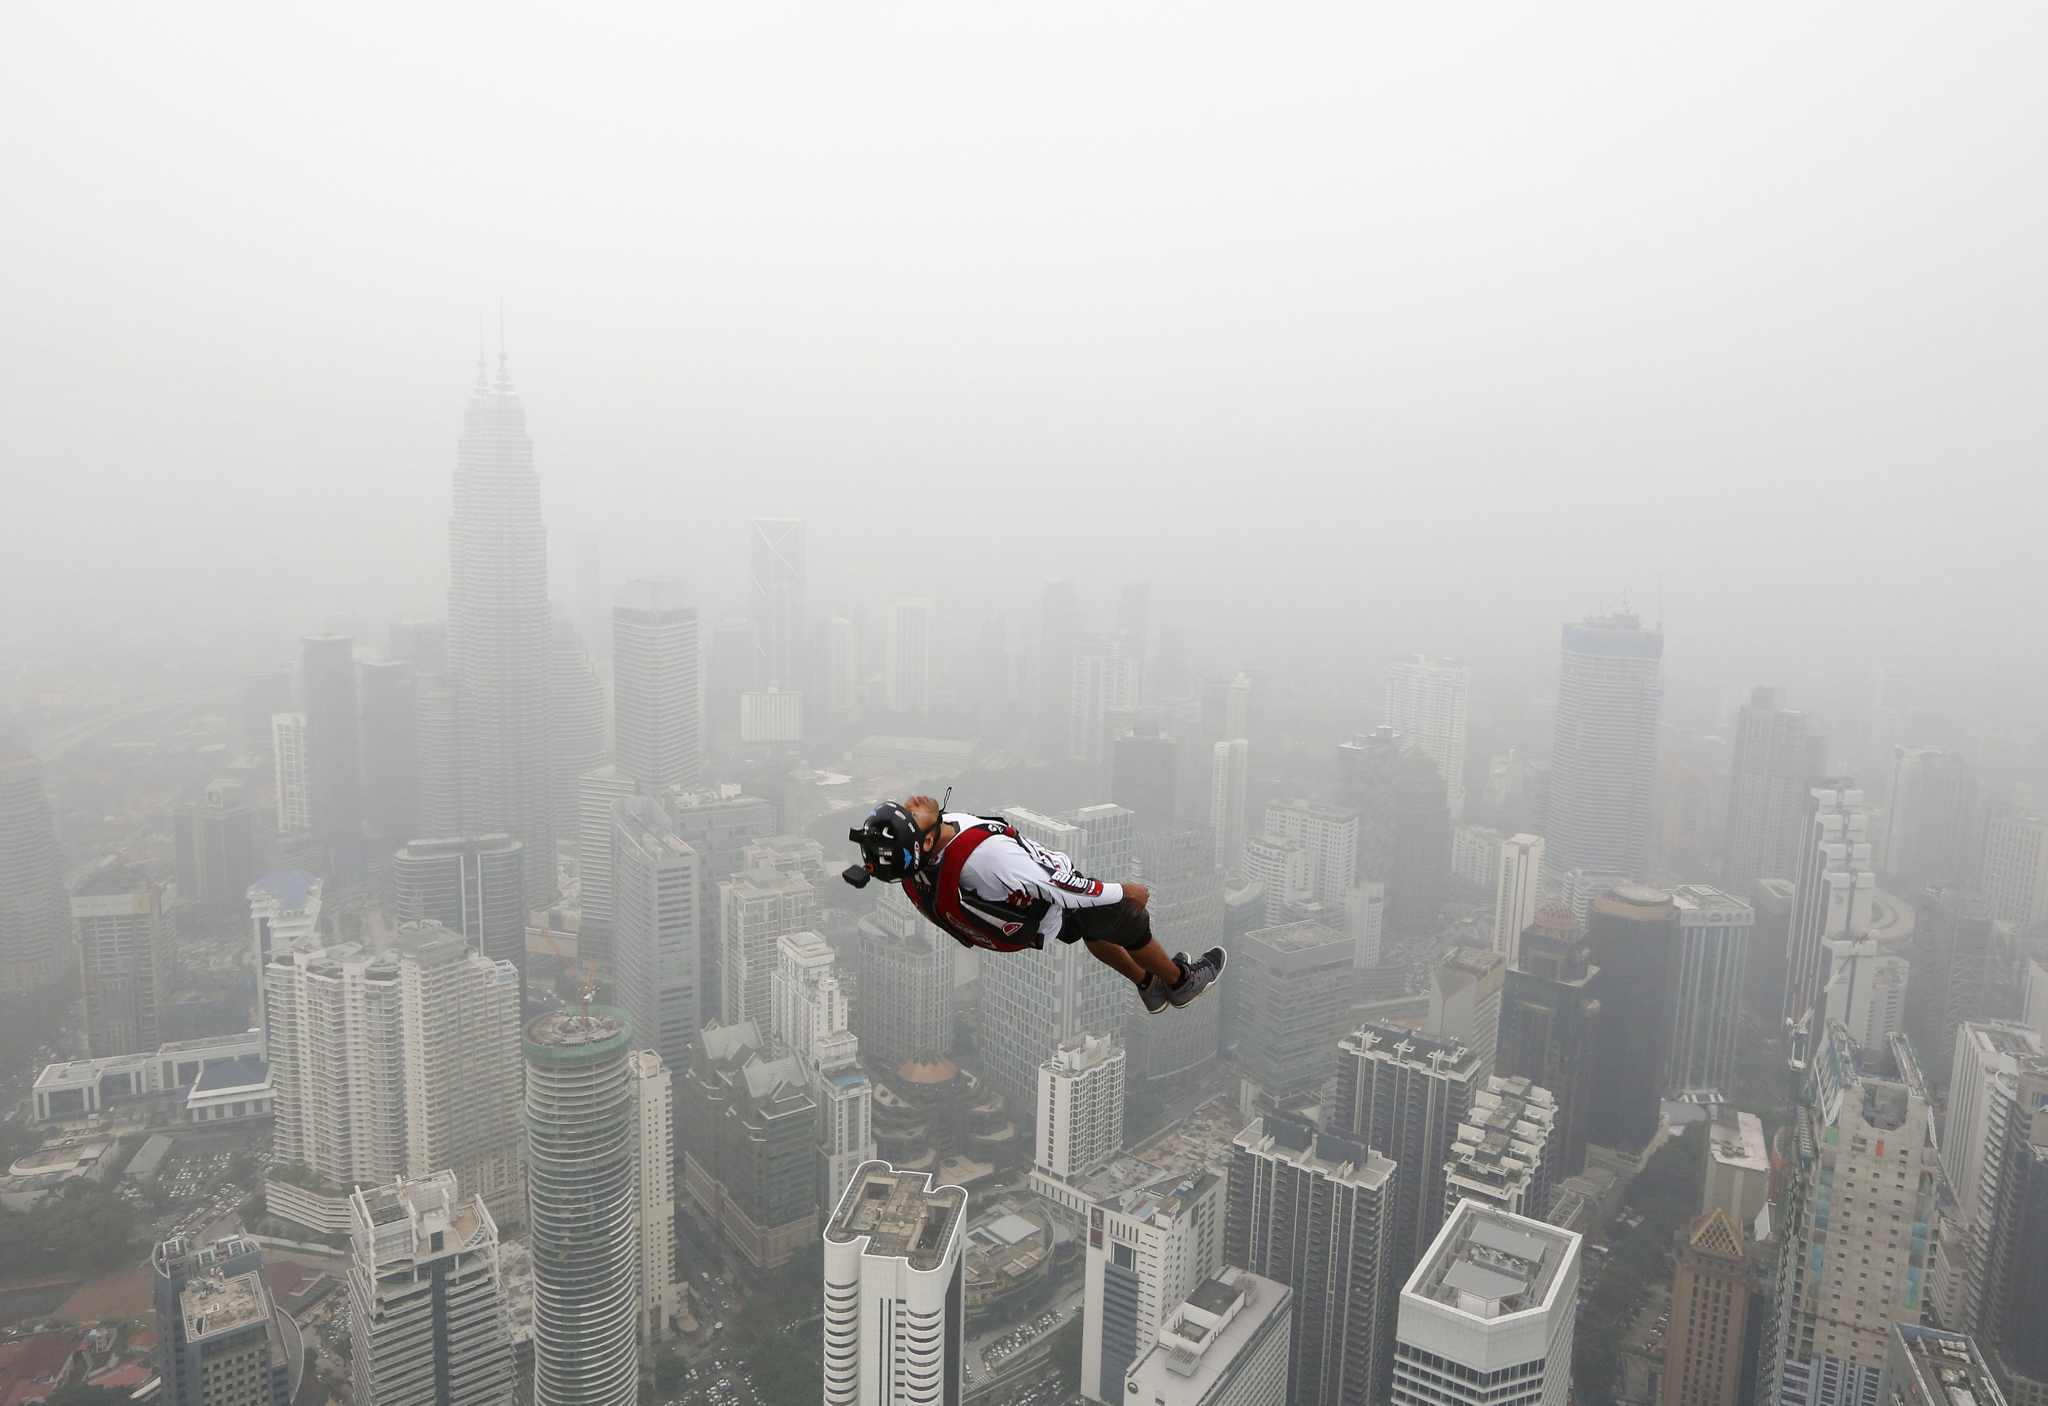 BASE jumper leaps from the 300-metre high Kuala Lumpur Tower during the International Tower Jump in which more than 100 people take part, on a hazy day in Kuala Lumpur, Malaysia October 2, 2015. Slash-and-burn agriculture in neighbouring Indonesia has blanketed Malaysia and Singapore in a choking haze for weeks.